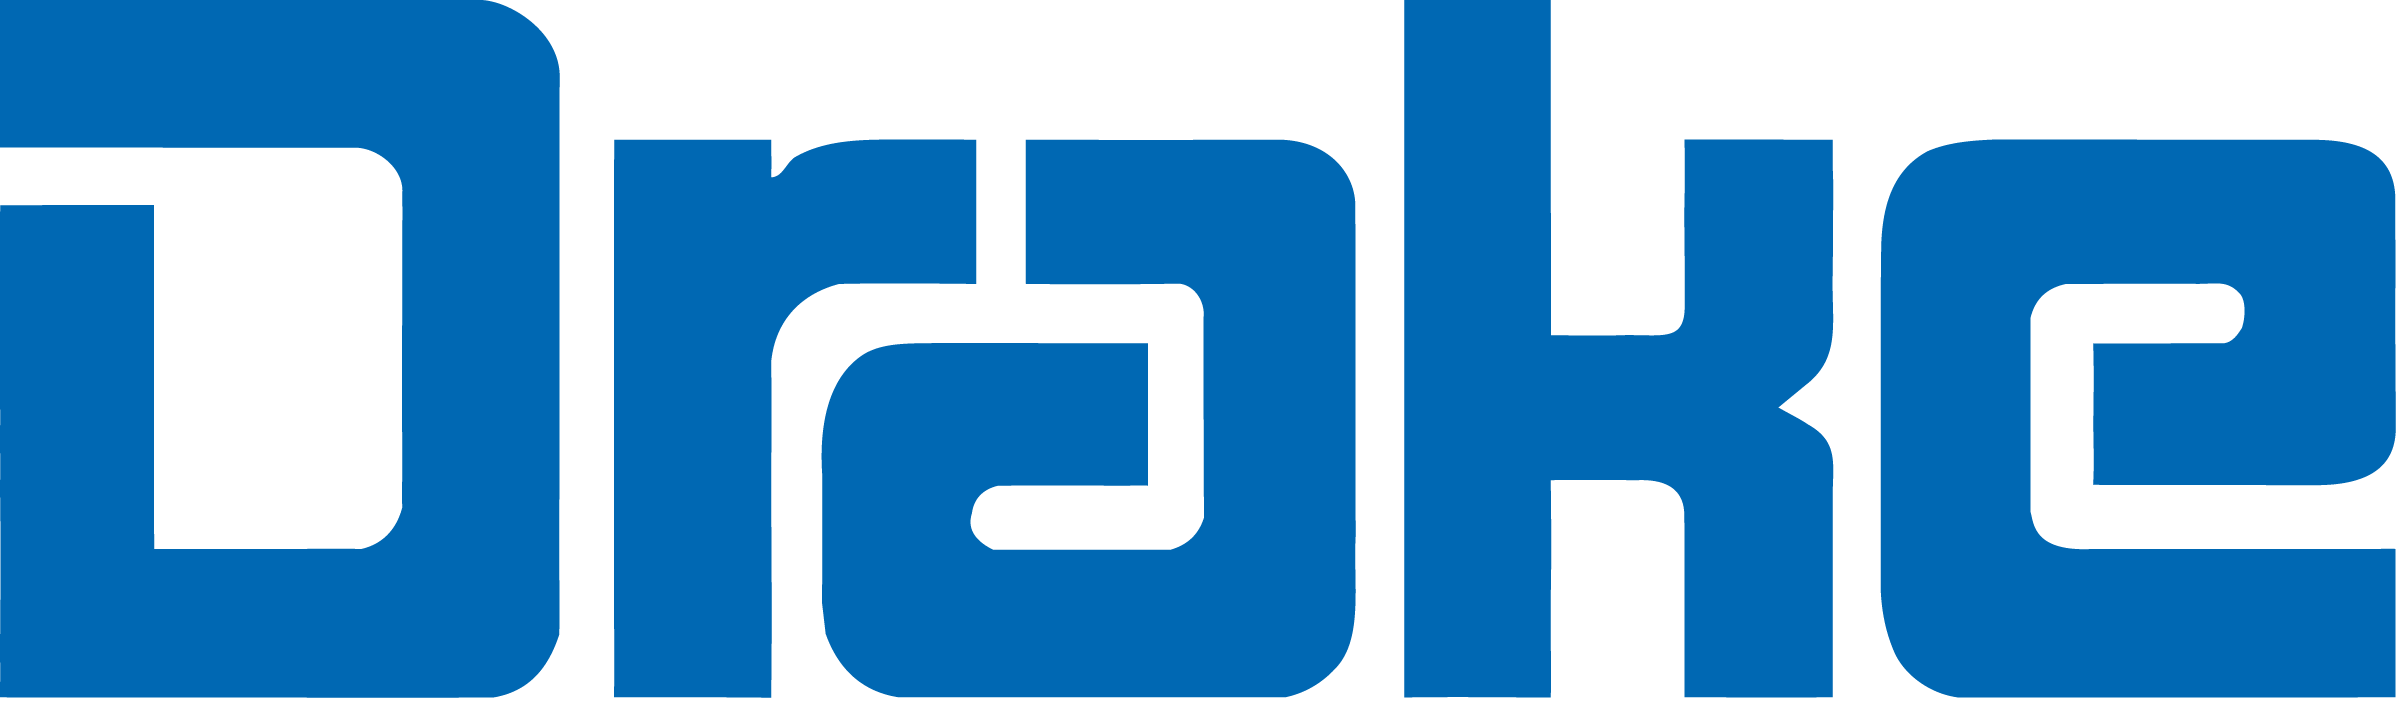 15Drake_PrecisionDefined_Logo.png